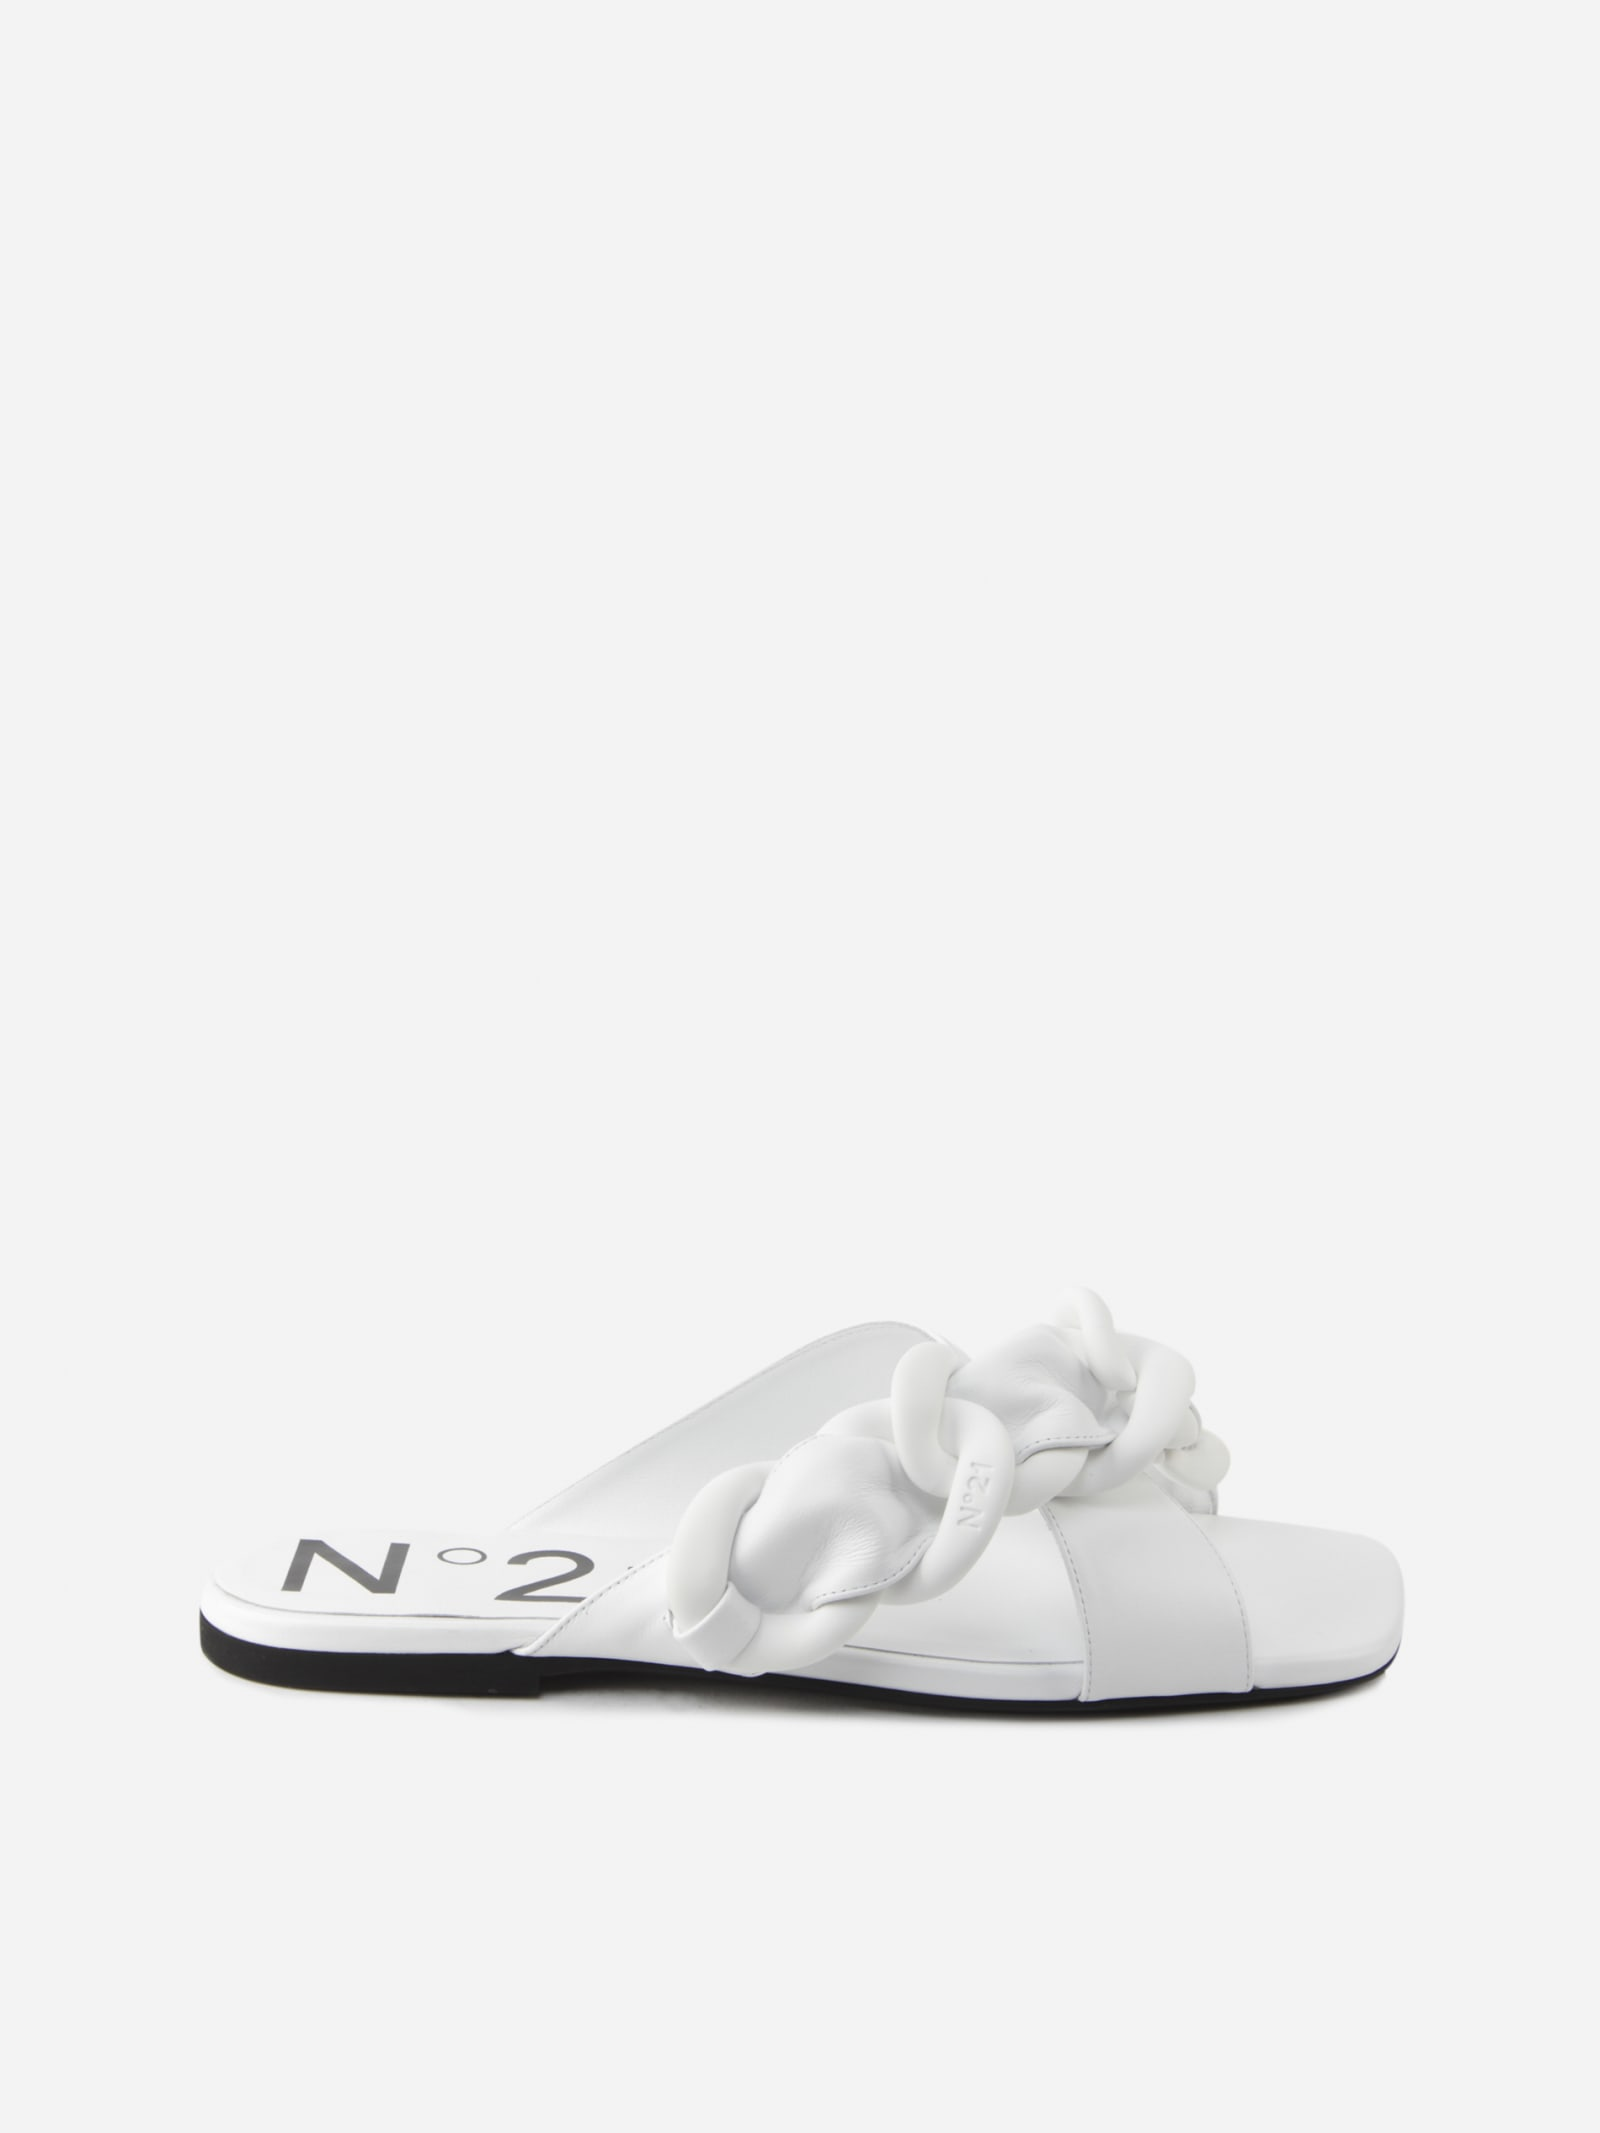 Buy N.21 Slip-on Sandals With Oversized Woven Leather Chain online, shop N.21 shoes with free shipping